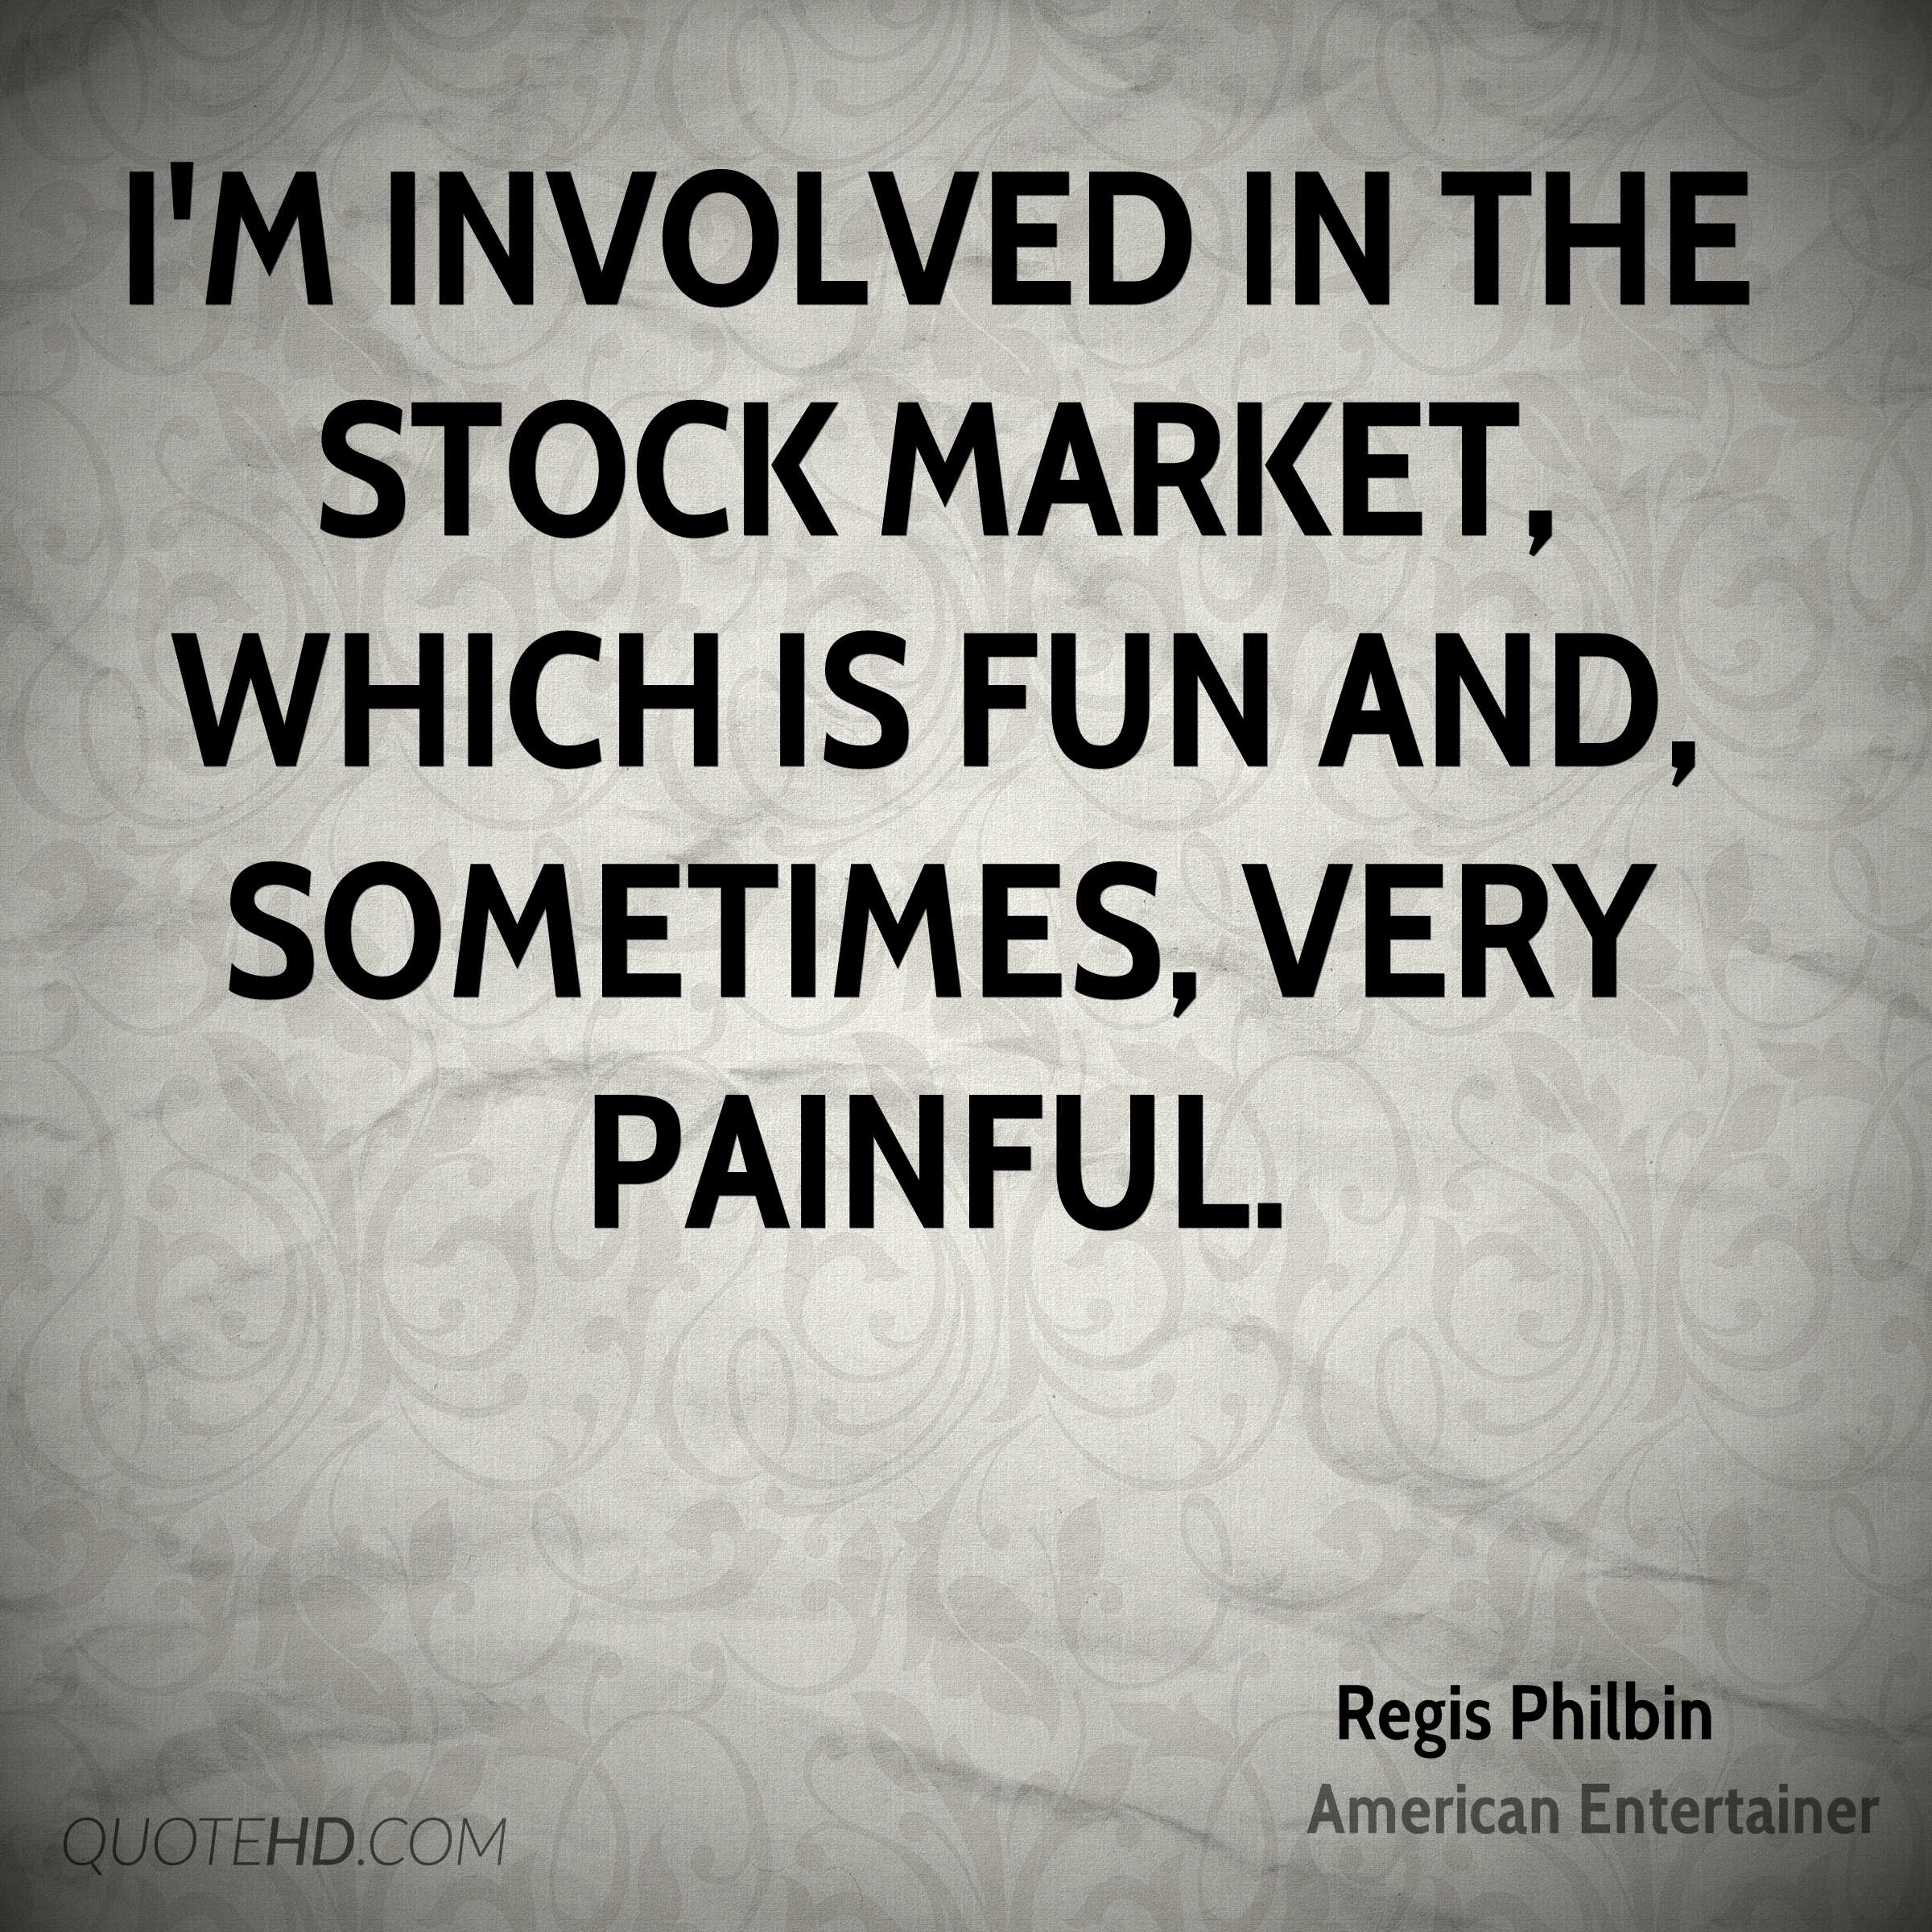 I'm involved in the stock market, which is fun and, sometimes, very painful.